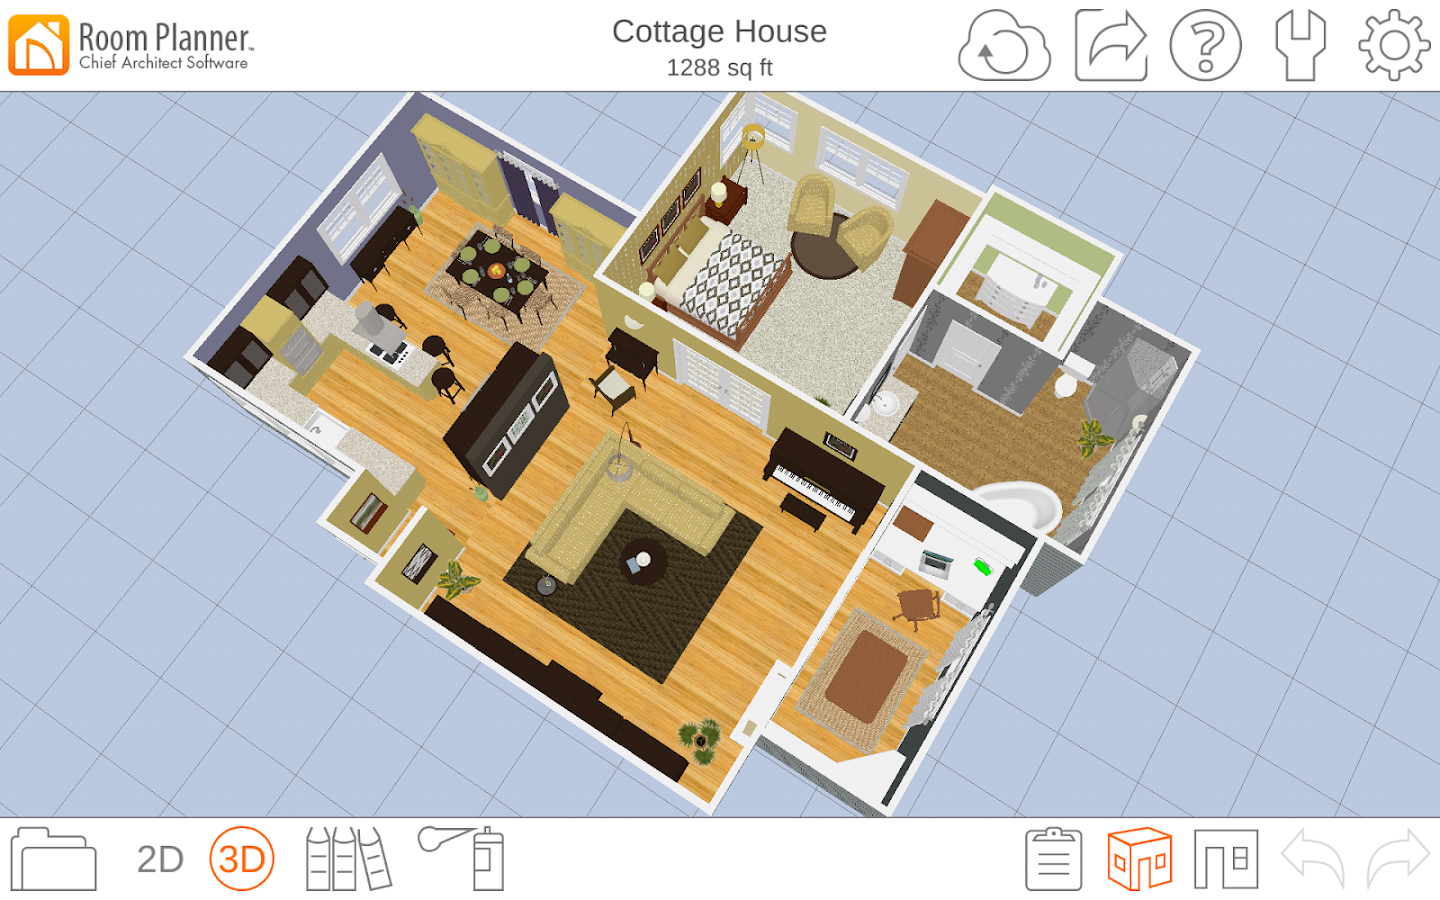 Room planner home design android apps on google play for Bedroom planner